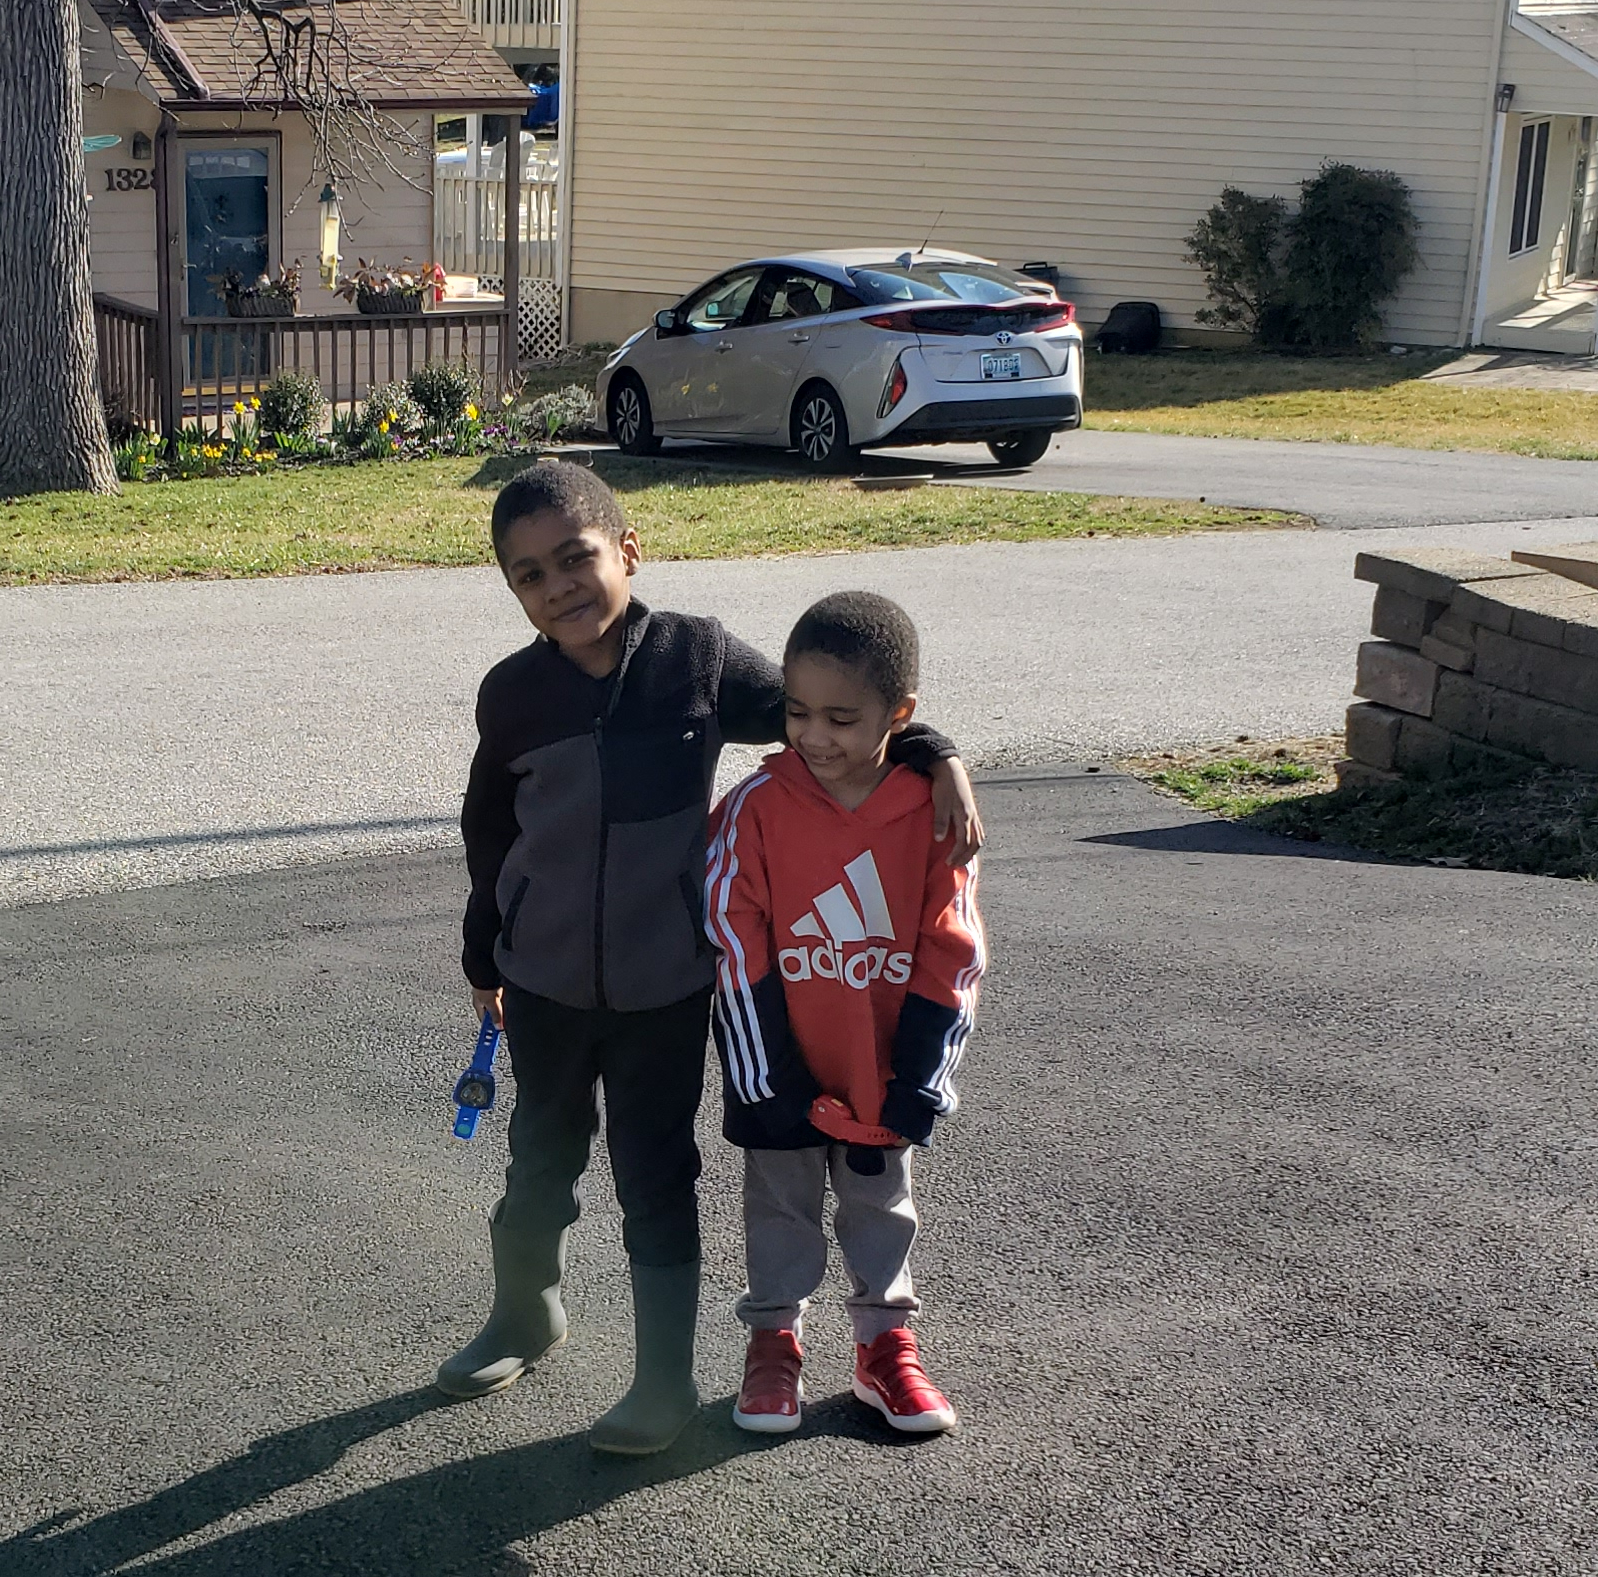 Our boys after our walk.